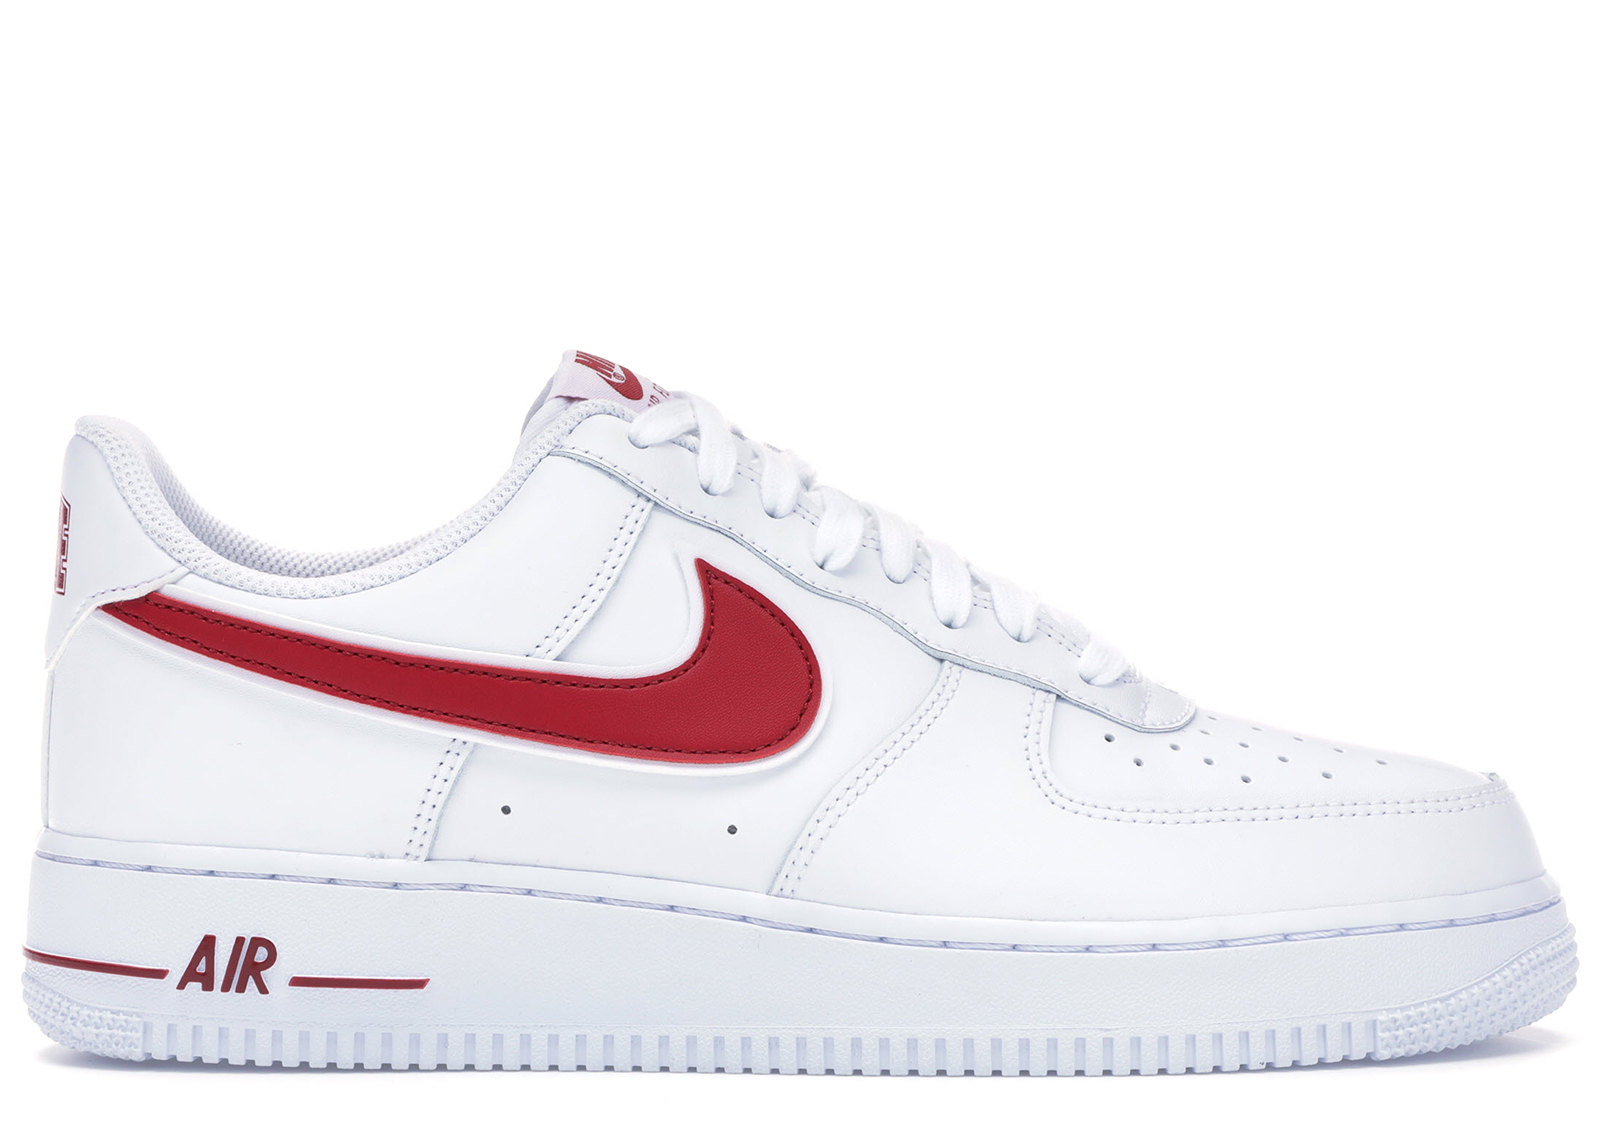 Nike Air Force 1 Low White Gym Red - AO2423-102